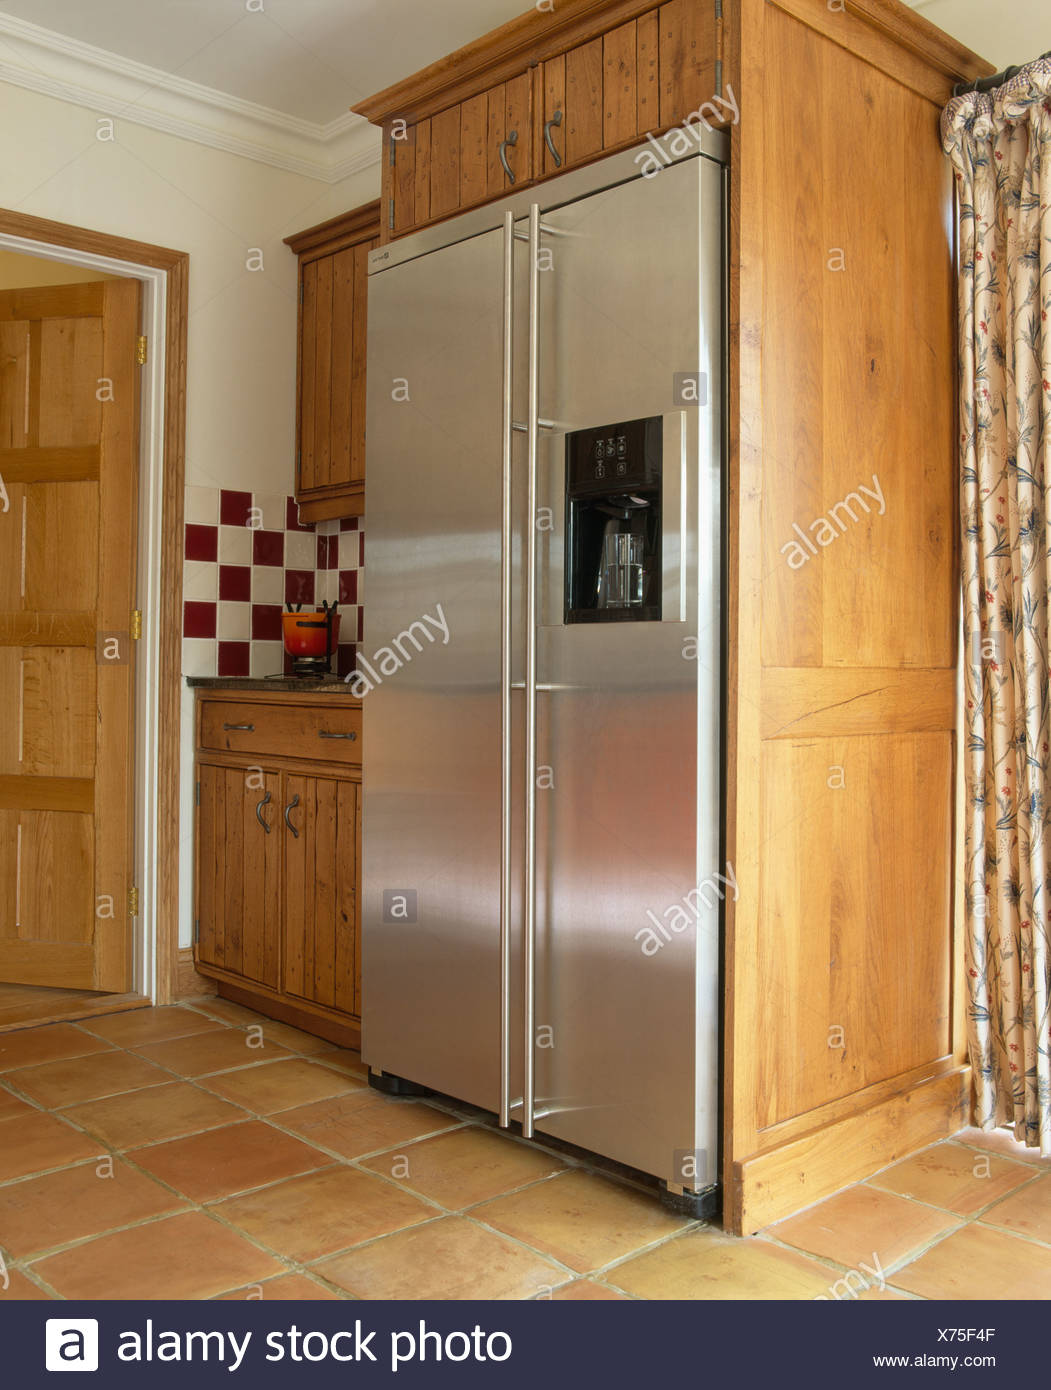 Traditionelle Amerikanische Küche Interiors Modern Kitchens Fridge Freezers Stockfotos